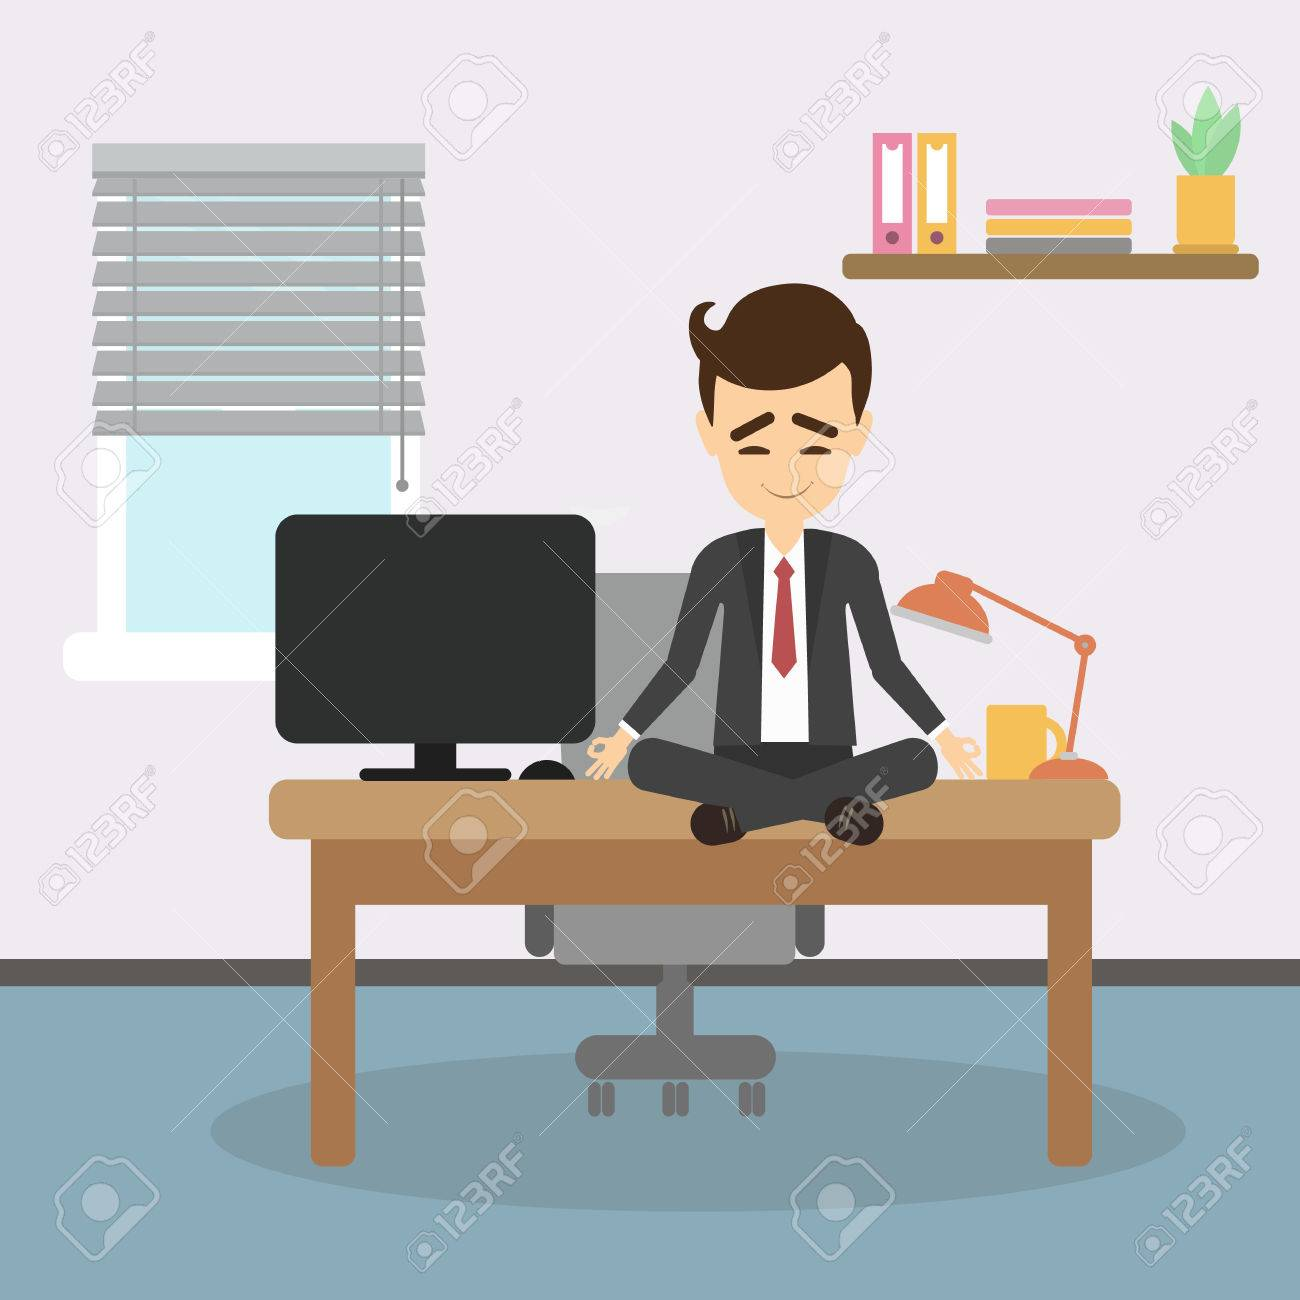 meditation businessman office. Meditation At Work. Businessman Sitting In Lotus Pose And Meditating. Relaxation Workplace. Office